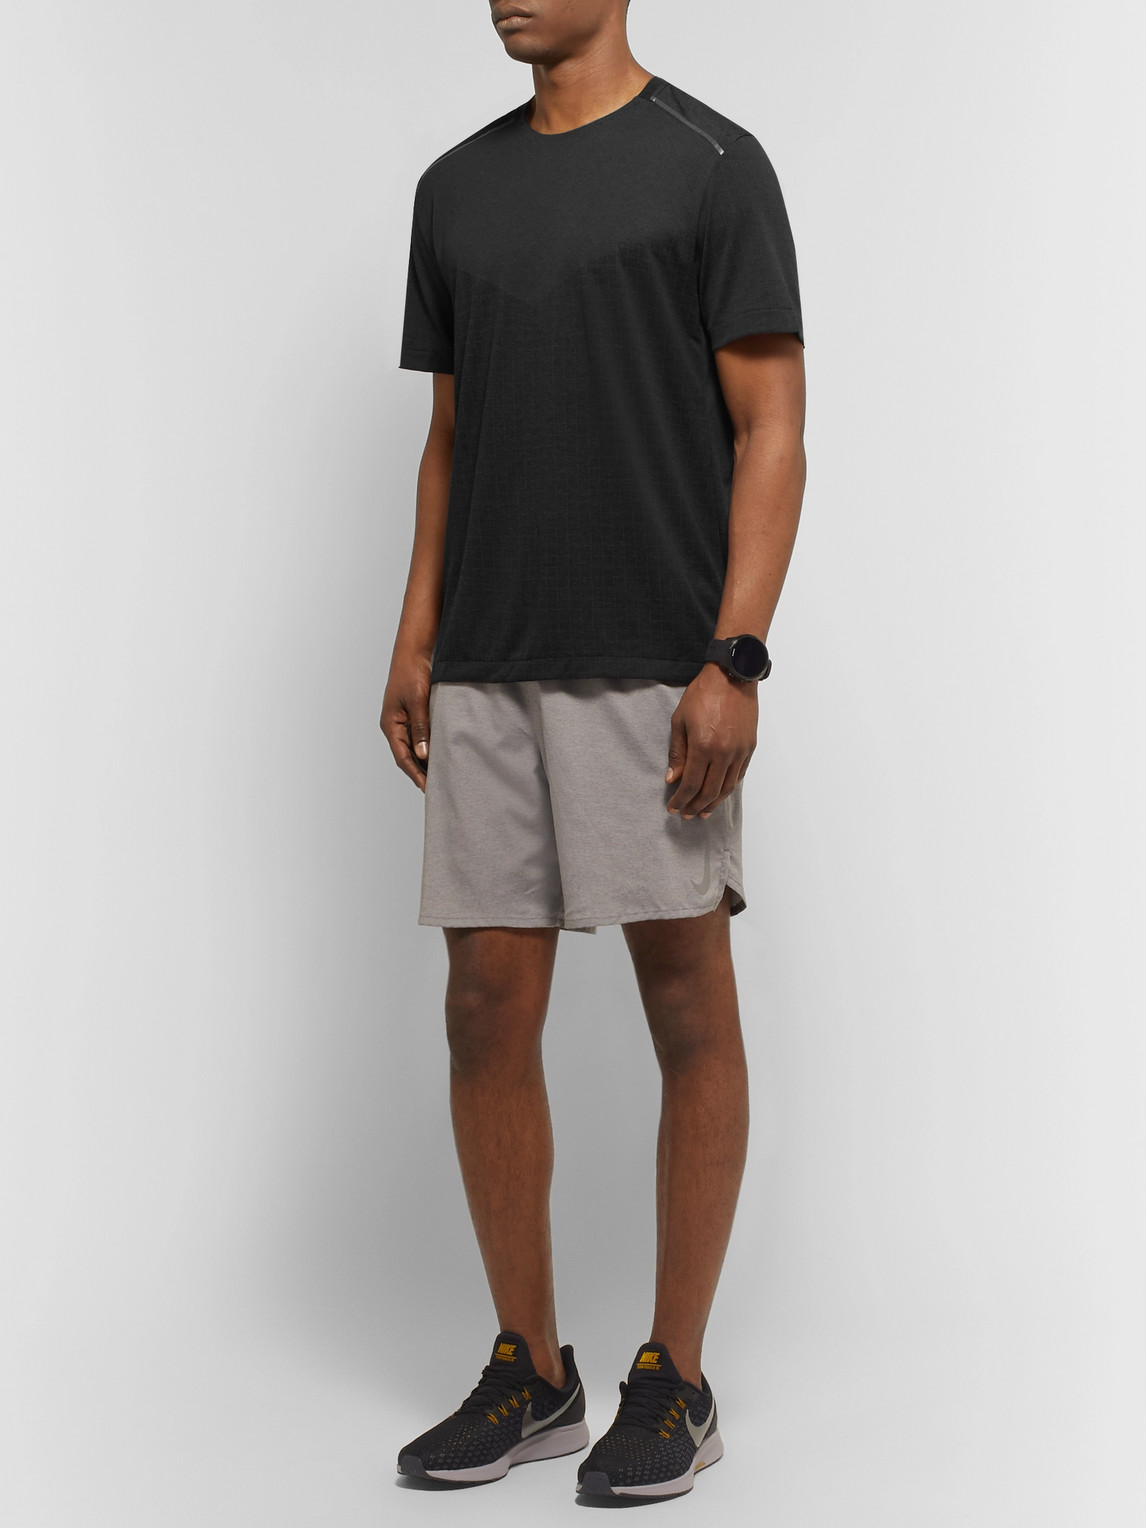 Nike Tops TECH PACK PERFORATED STRETCH JACQUARD